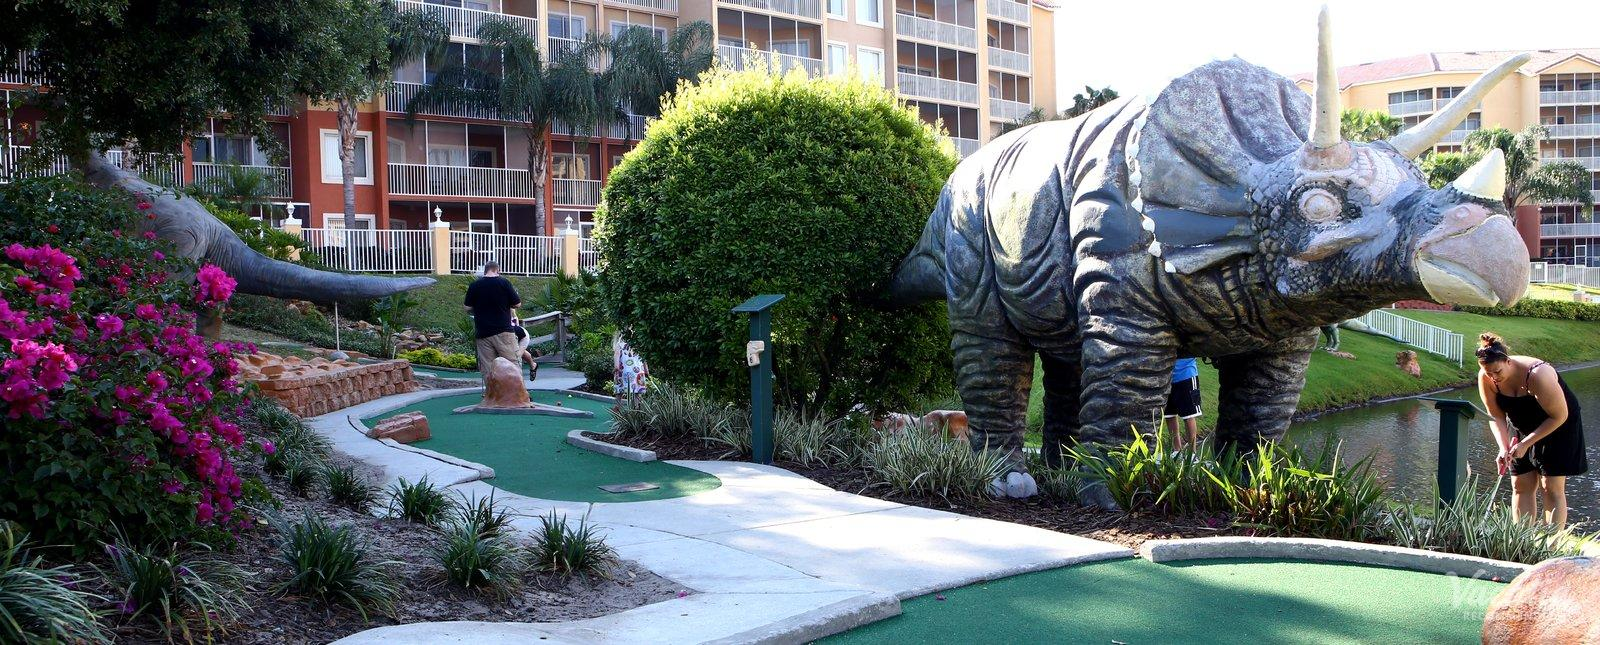 Westgate Town Center minigolf for families